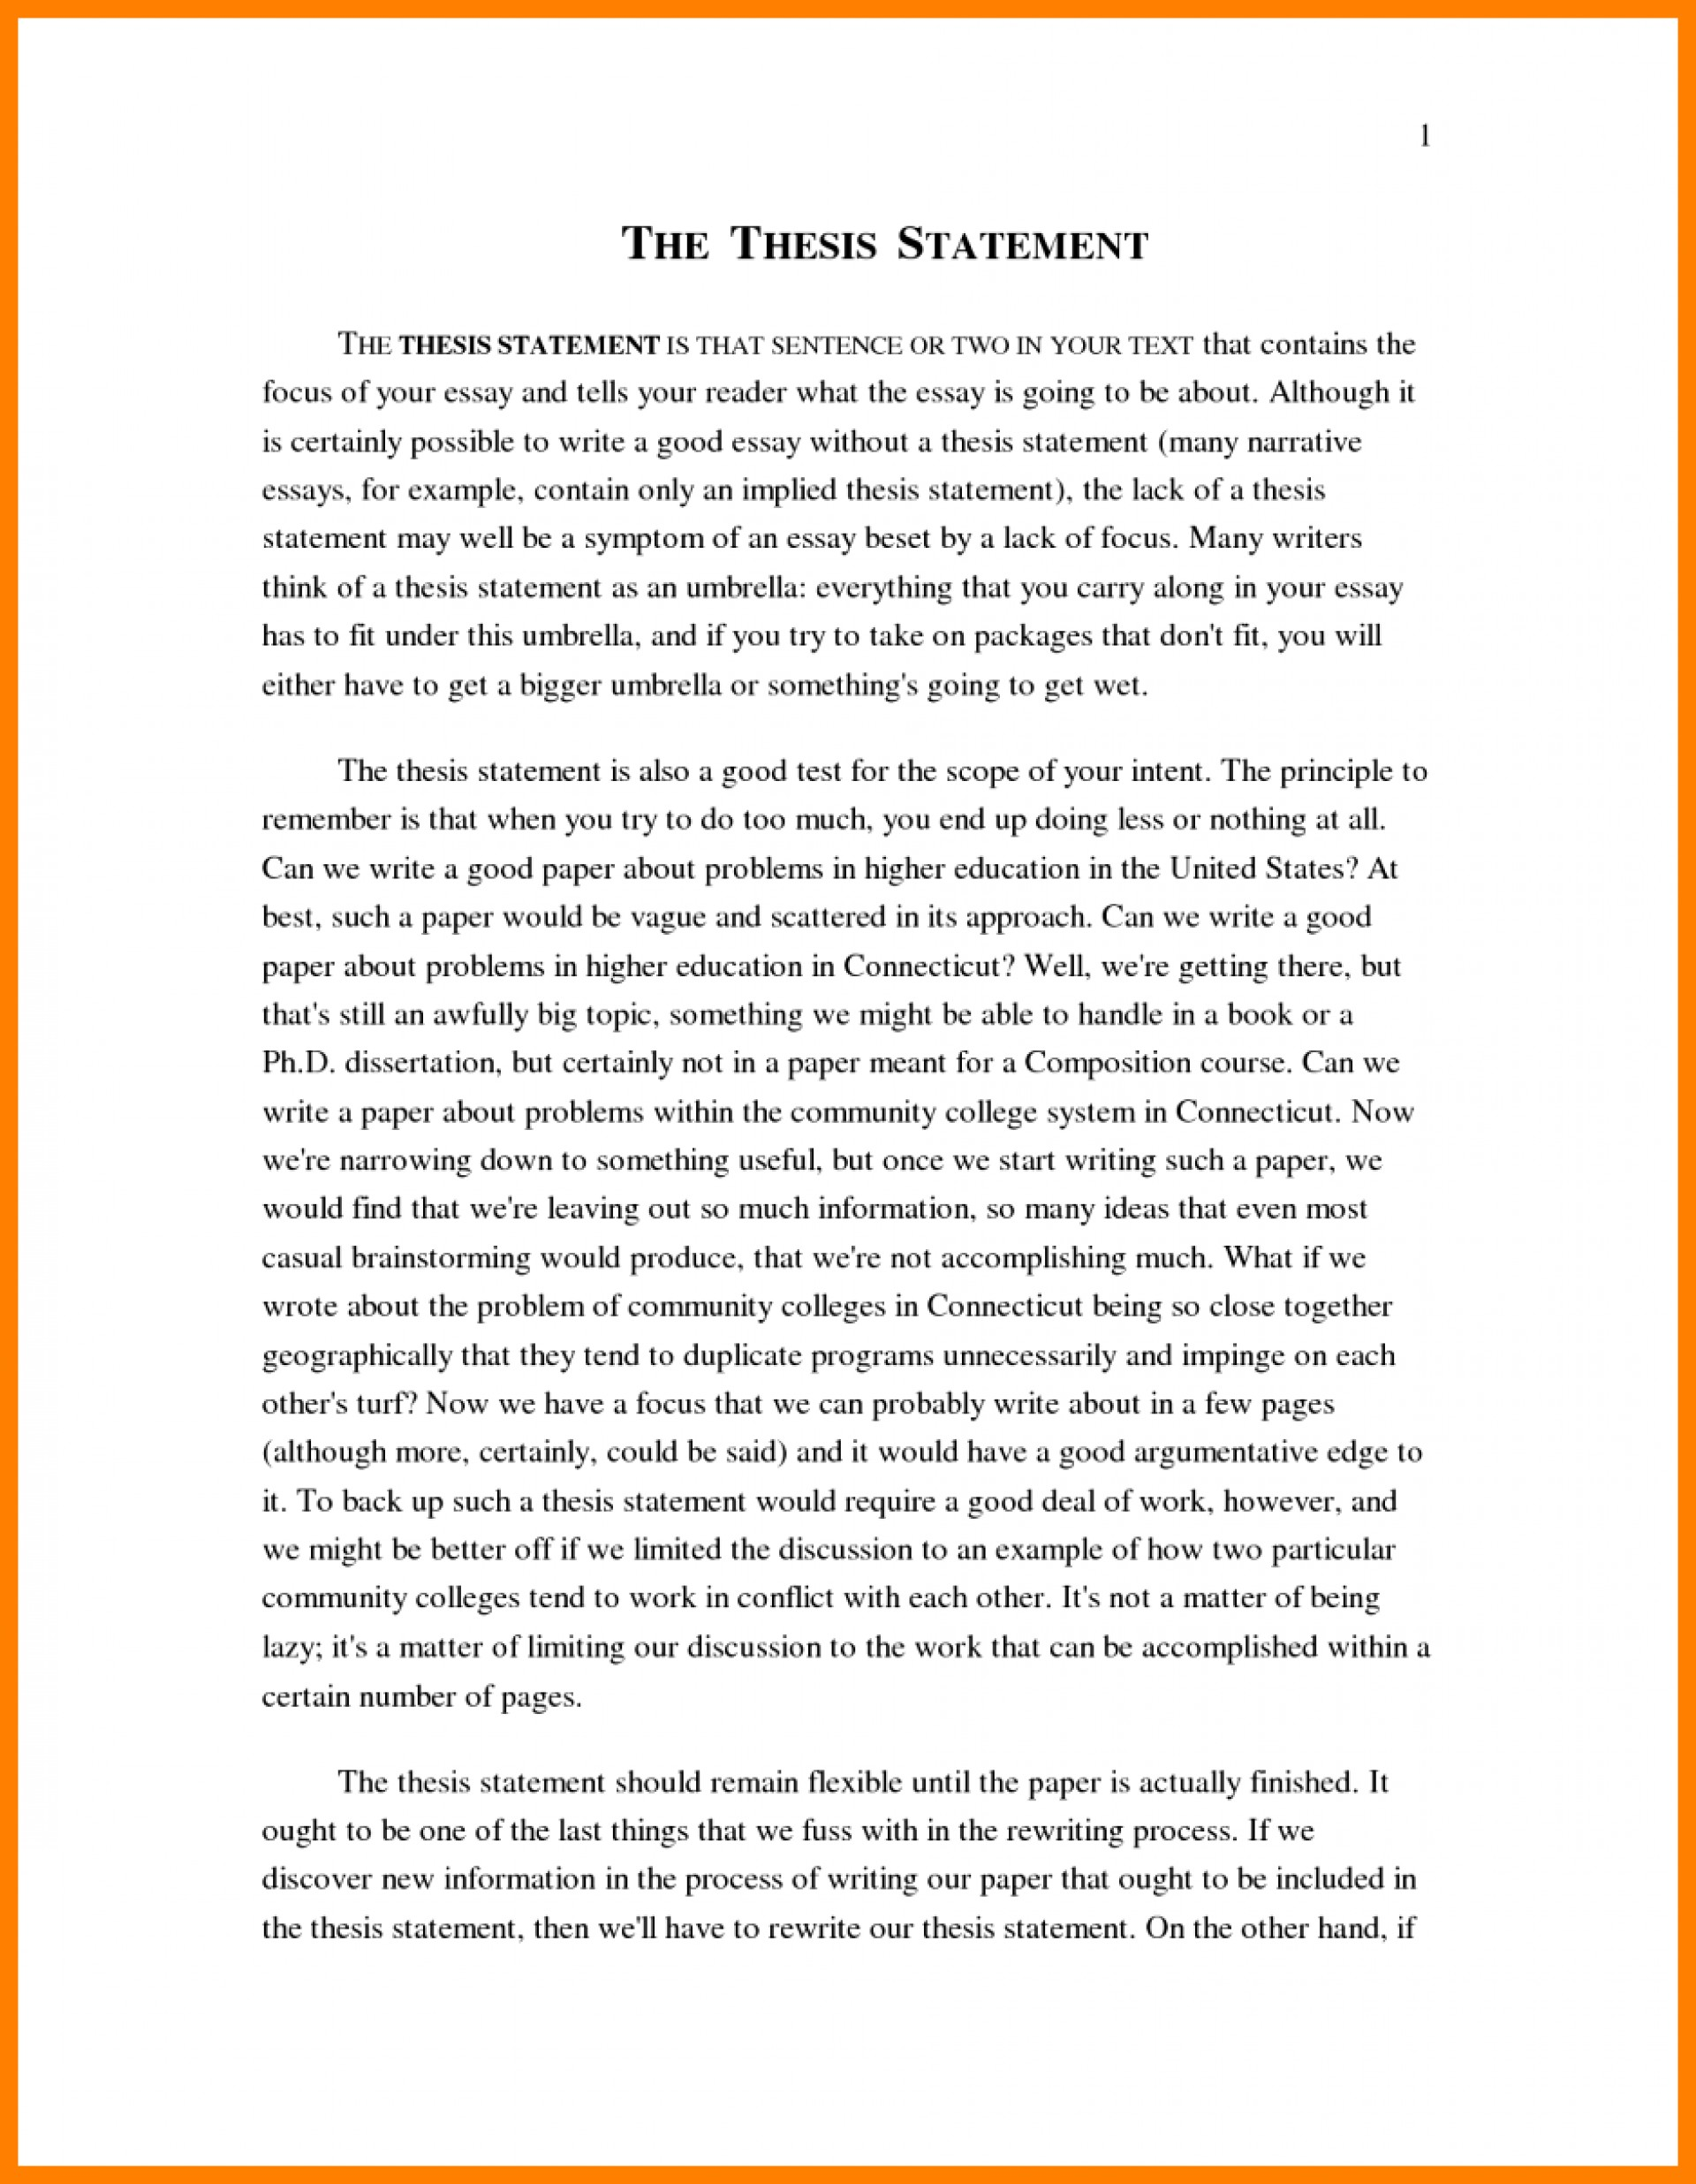 006 Personal Narrative Essay Example High School Examp Examples Short Stirring Topics For Grade 7 College 6th 1920